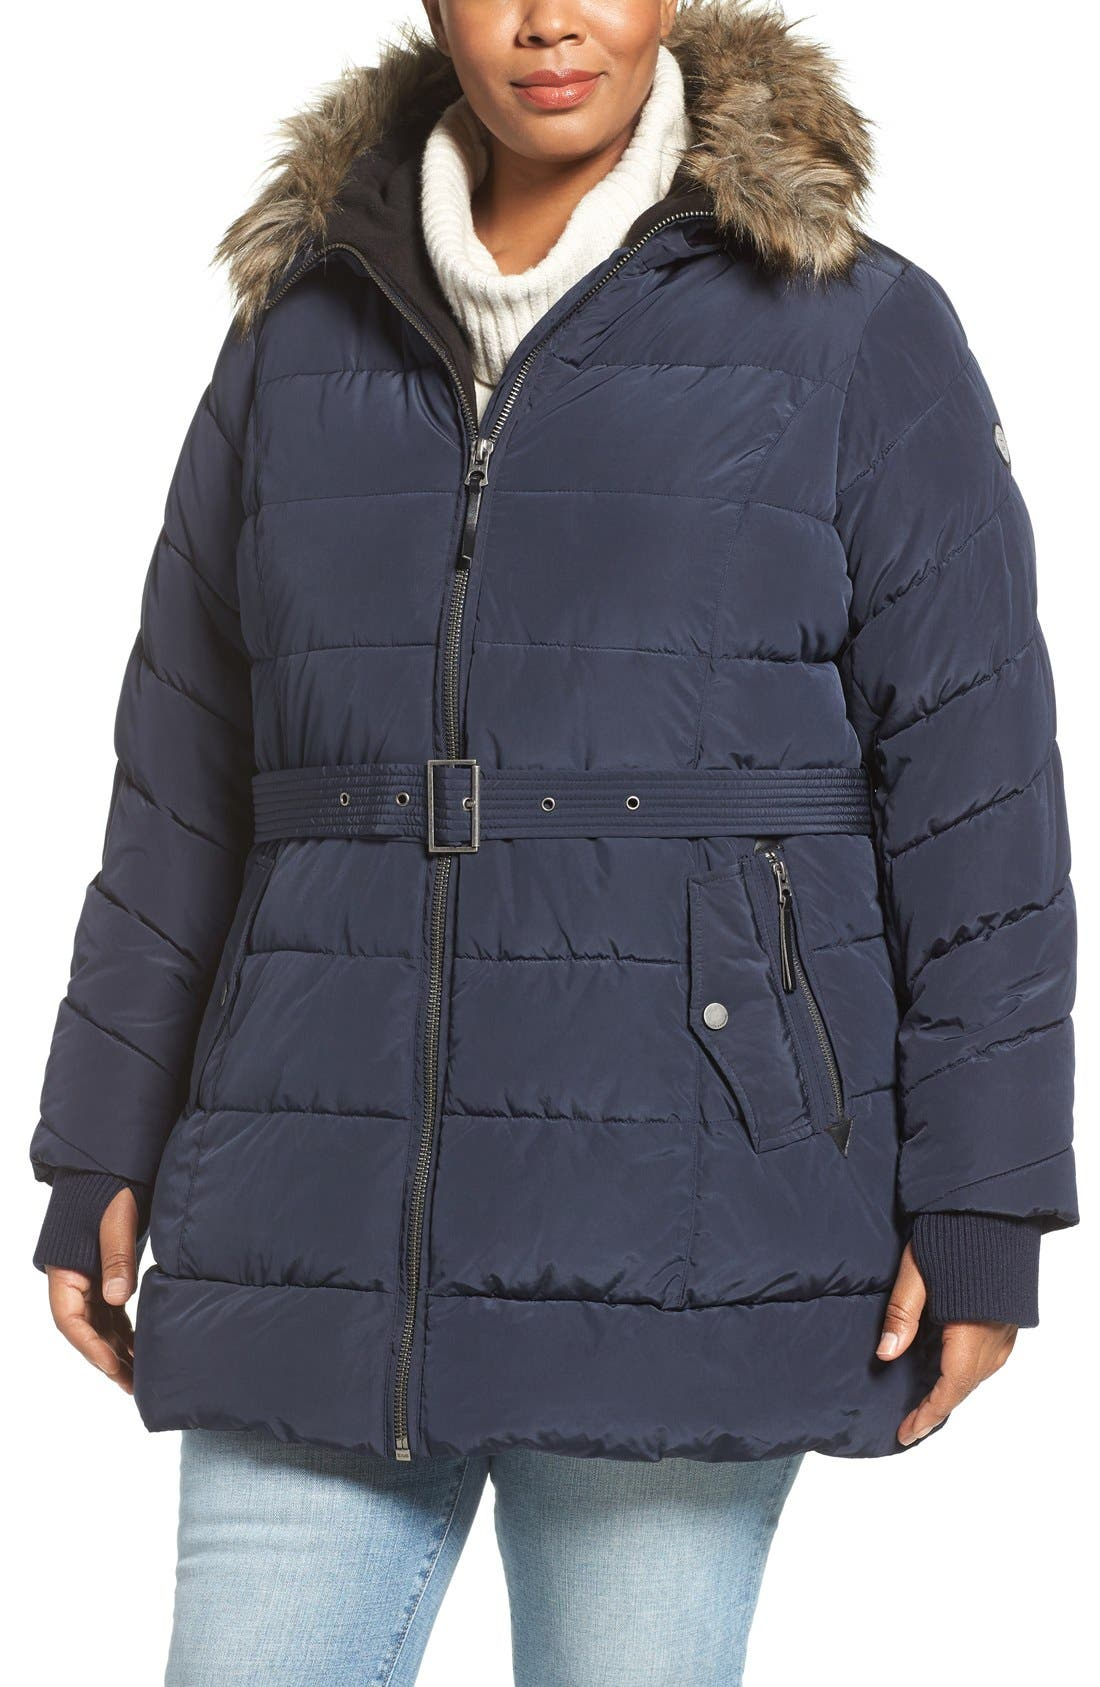 Alternate Image 4  - Lucky Brand Belted Puffer Jacket with Faux Fur Trim (Plus Size)